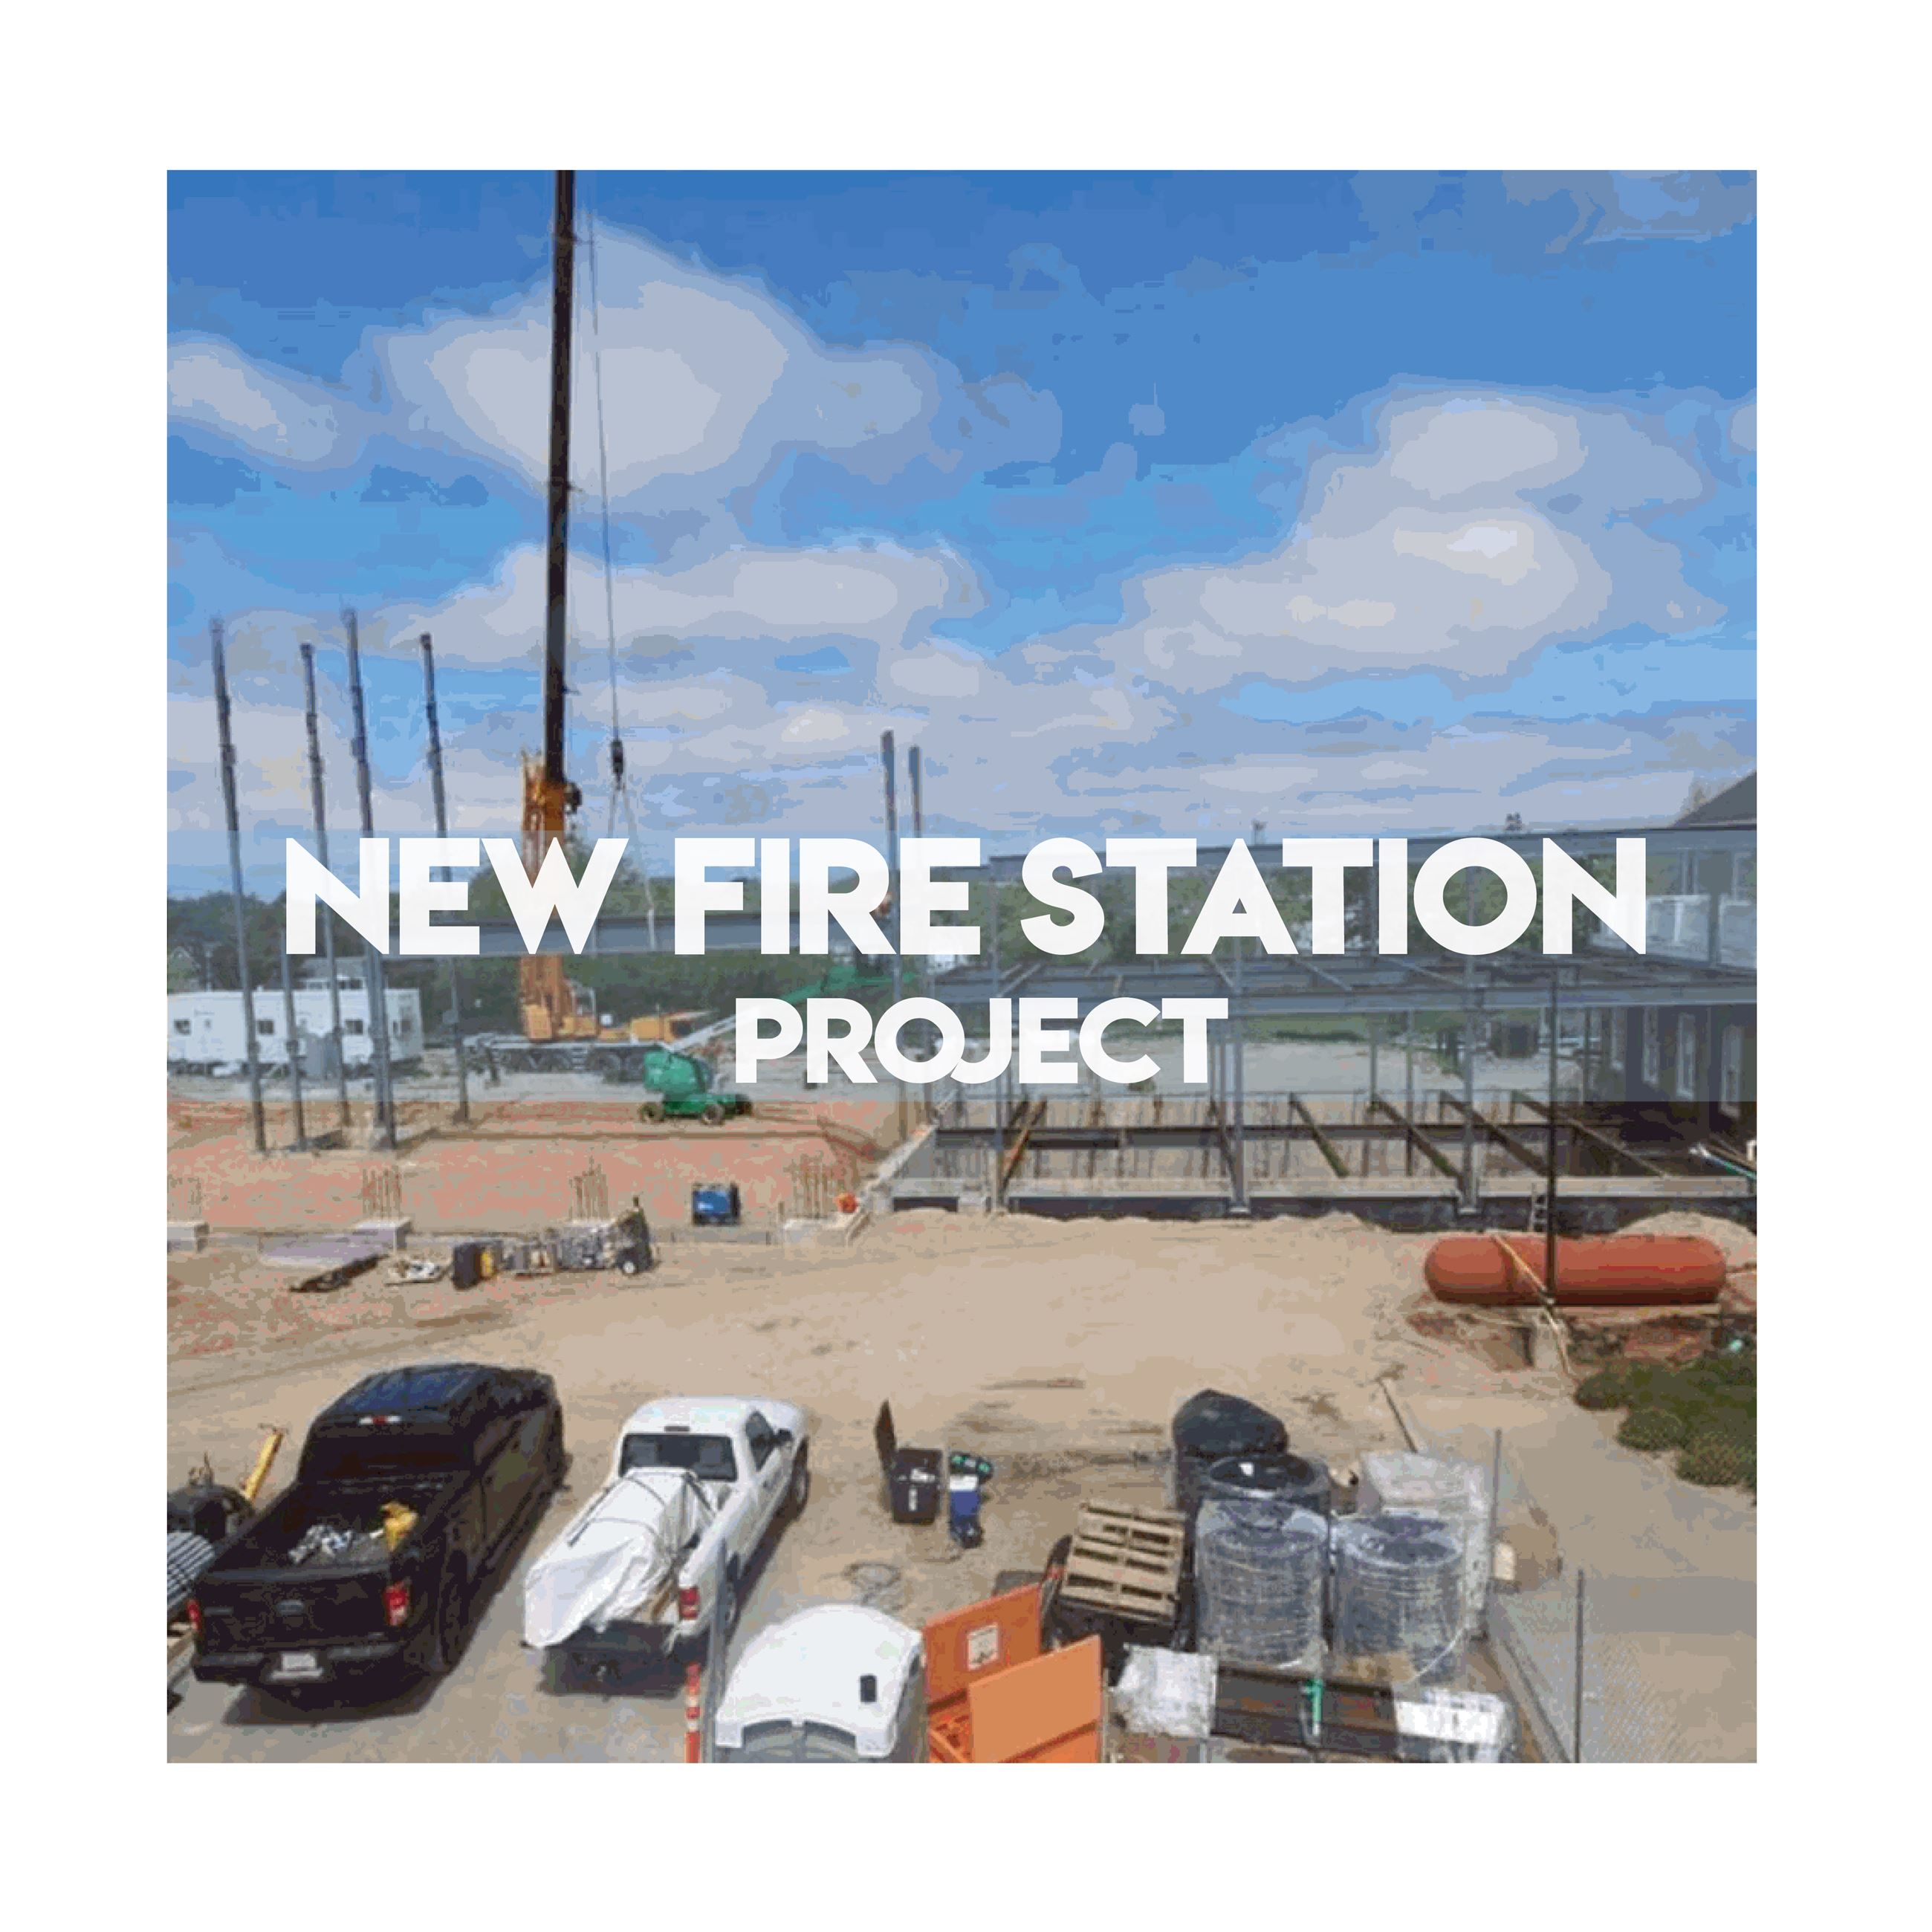 Fire Station project